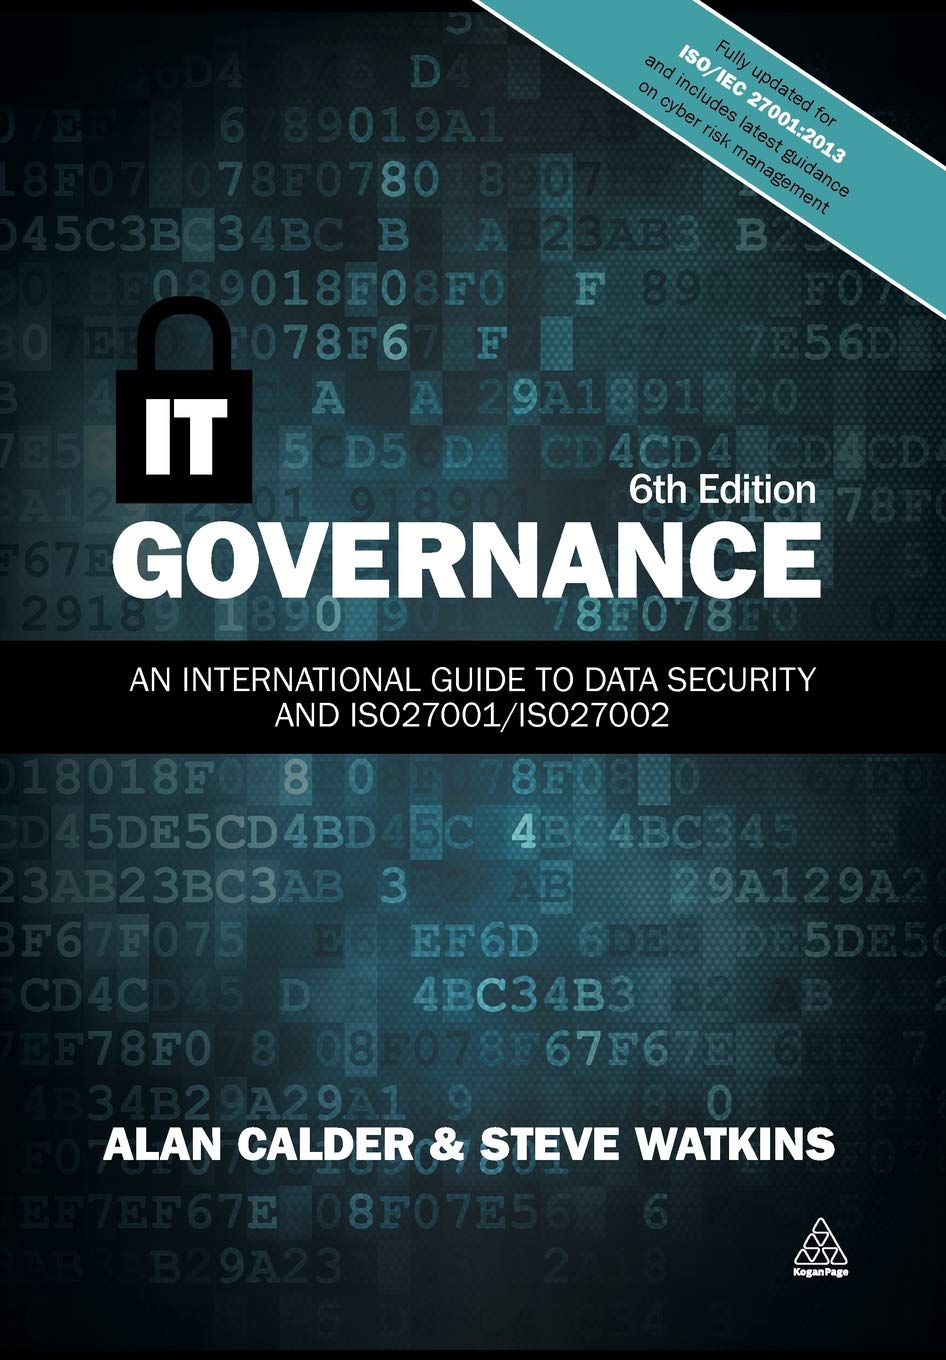 IT GOVERNANCE – AN INTERNATIONAL GUIDE TO DATA SECURITY AND ISO27001/ISO27002